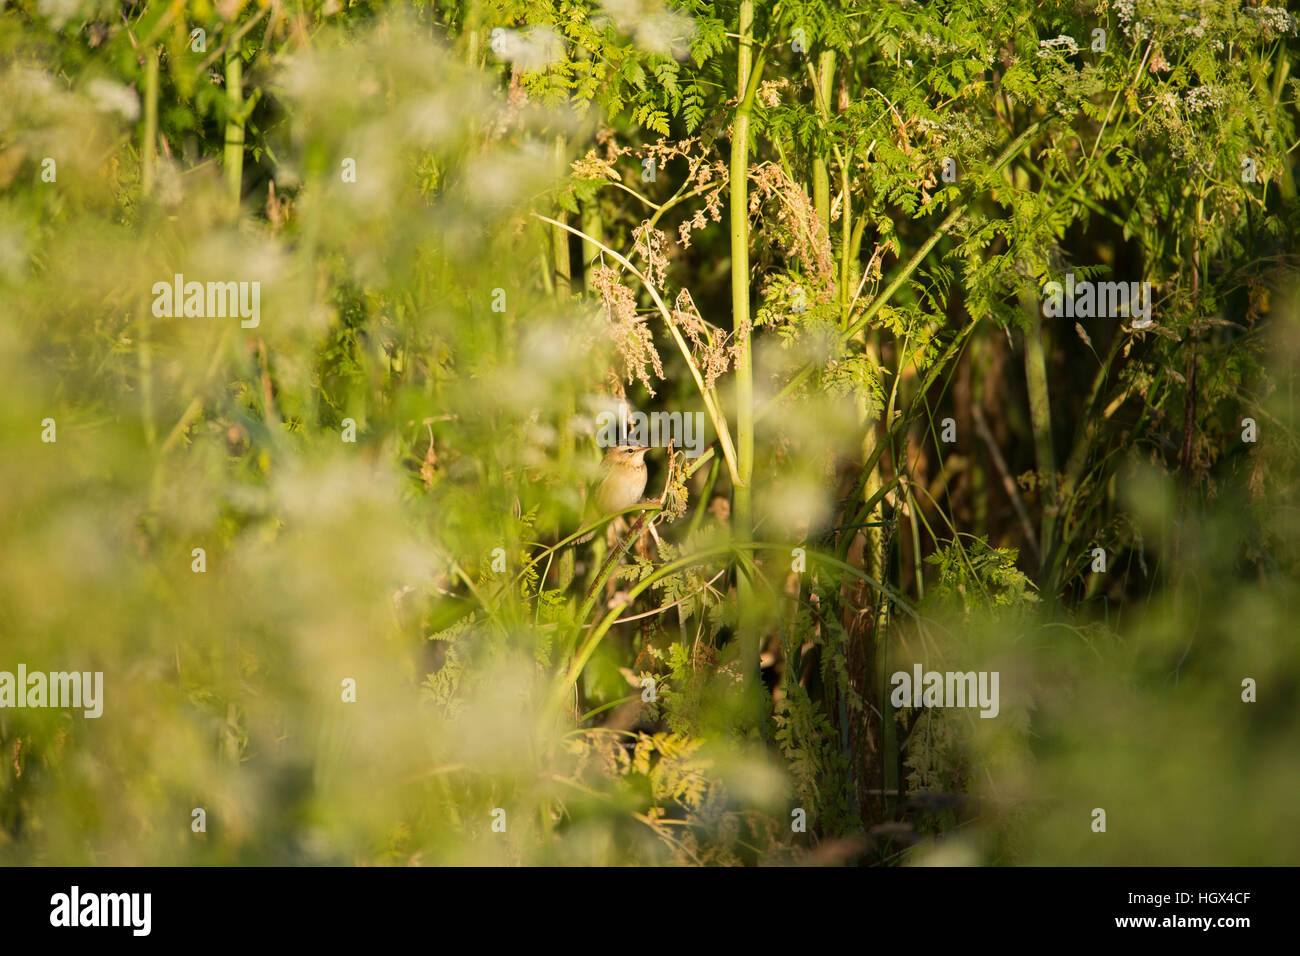 lbj little brown jobs small birds sedge warbler skulking about lbj little brown jobs small birds sedge warbler skulking about in the undergrowth so hard to see among the vegetation